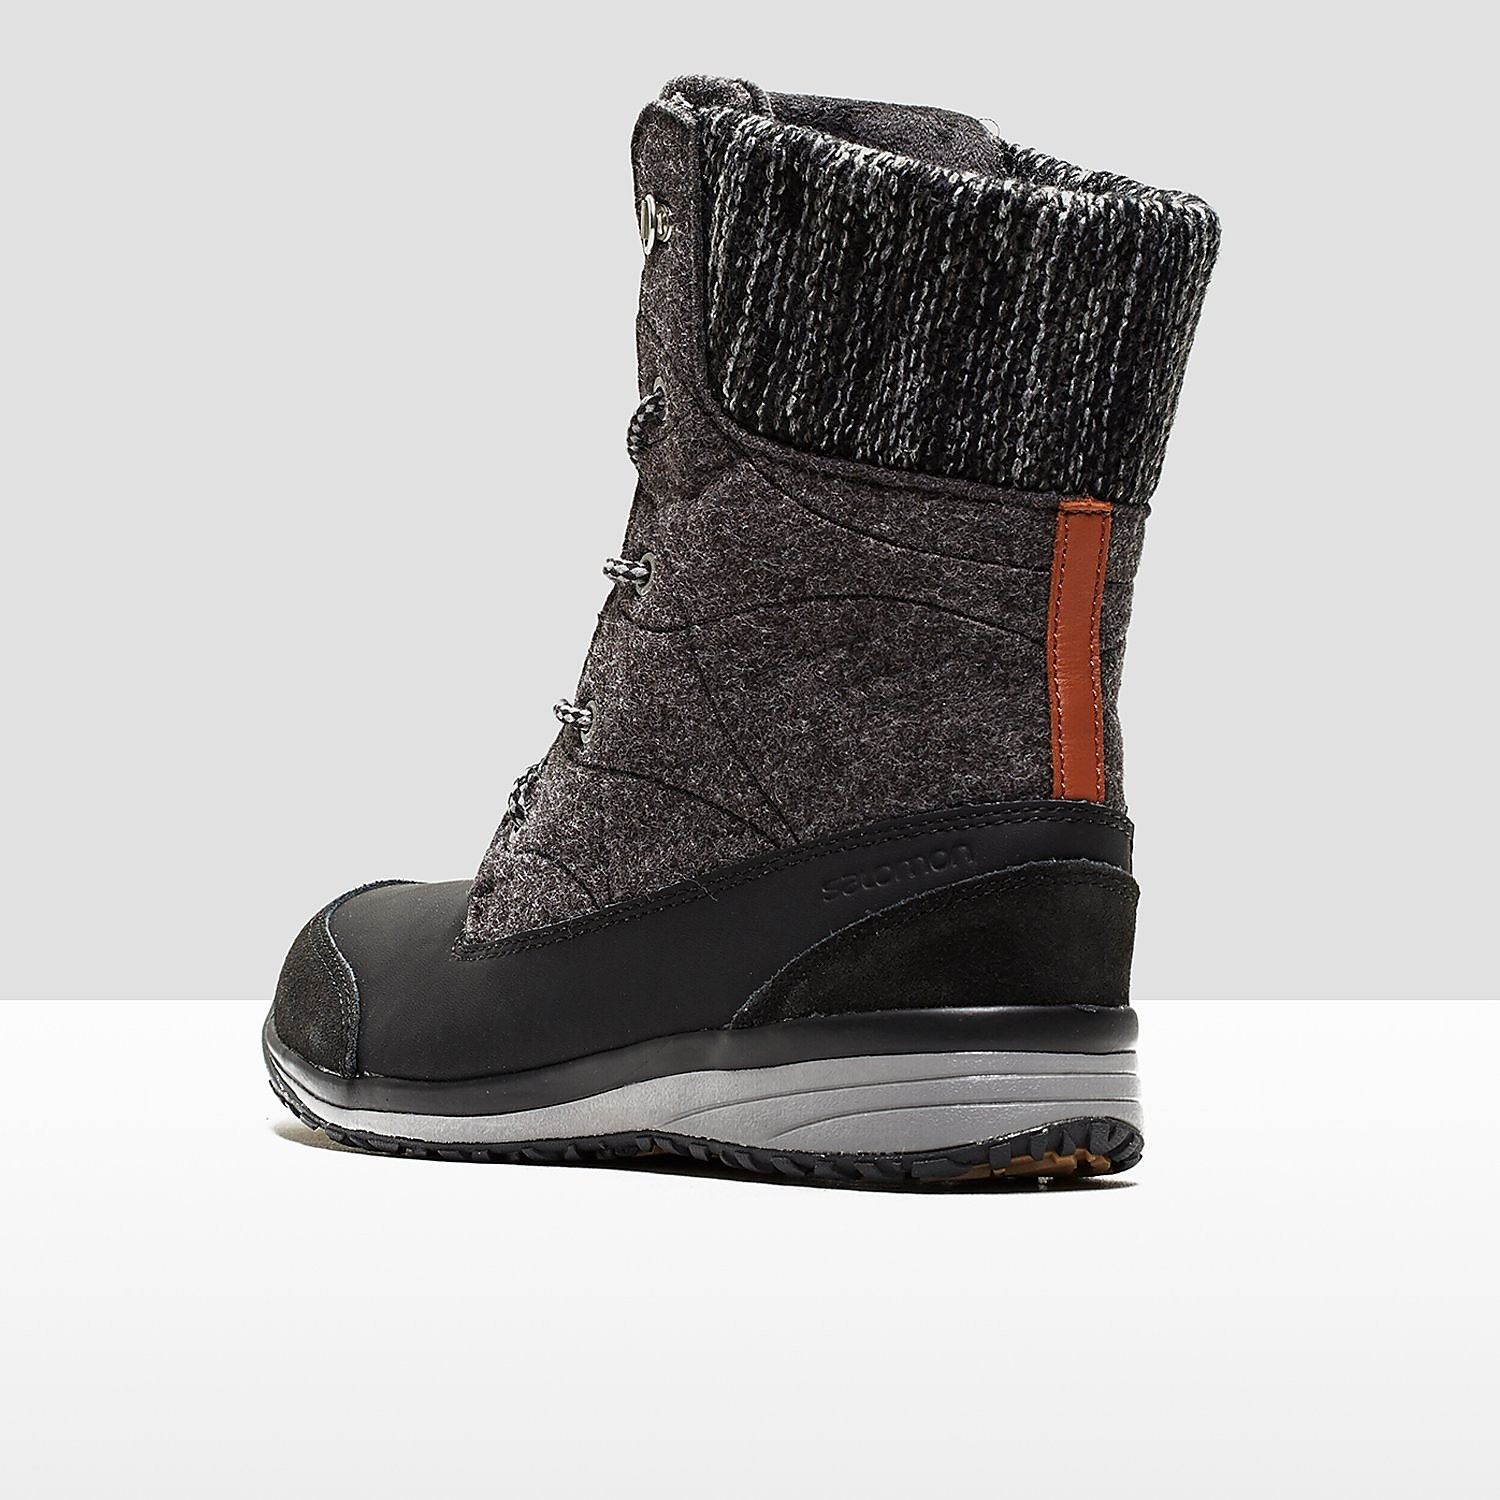 Salomon Hime Mid Ladies Winter Boot